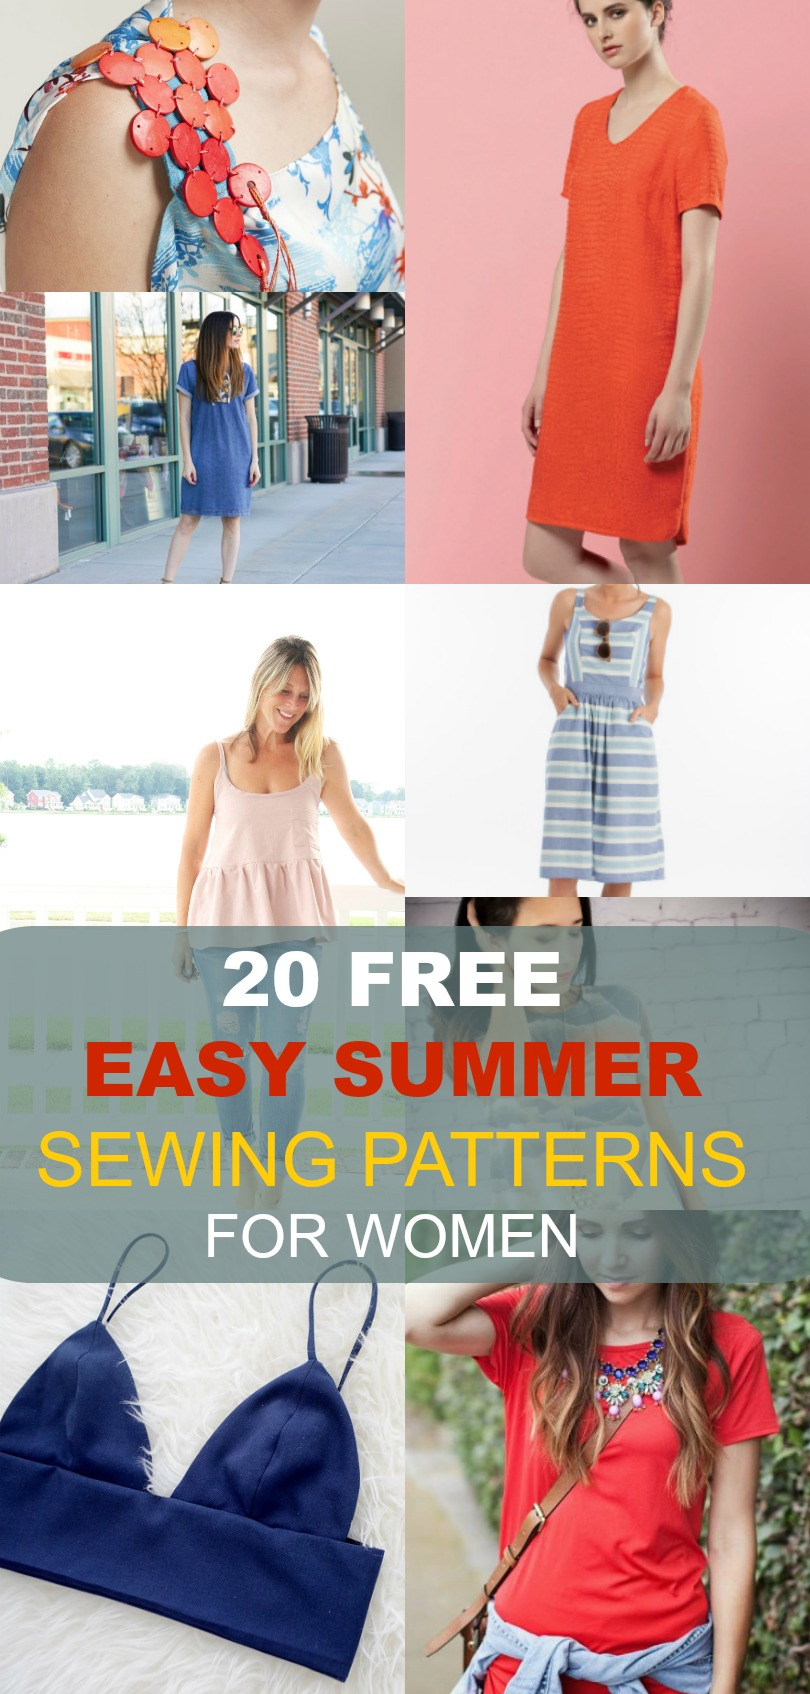 20 Simple Nail Designs For Beginners: FREE SEWING PATTERNS: 20 Easy Summer Patterns For Women